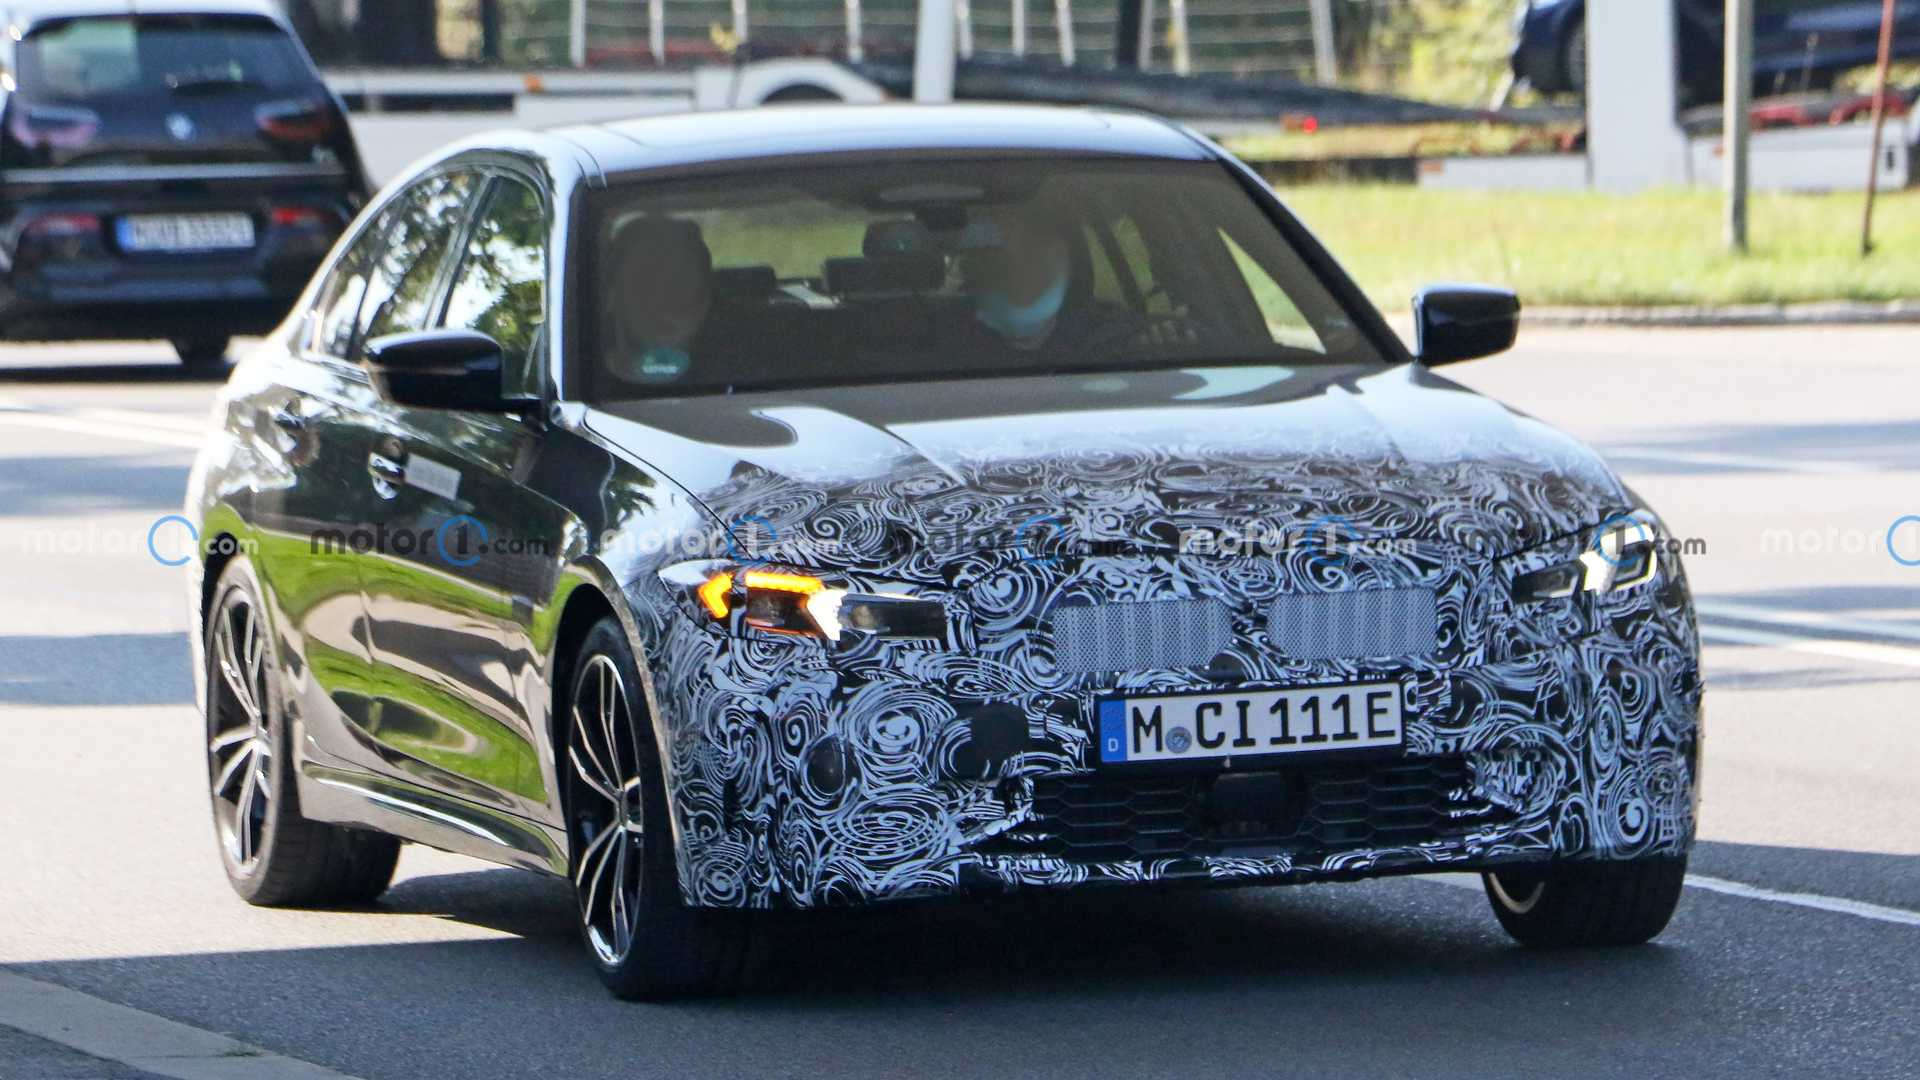 BMW is getting a refreshed 3 Series sedan ready to rumble, and the latest spy shots suggest that it could be close to launch.